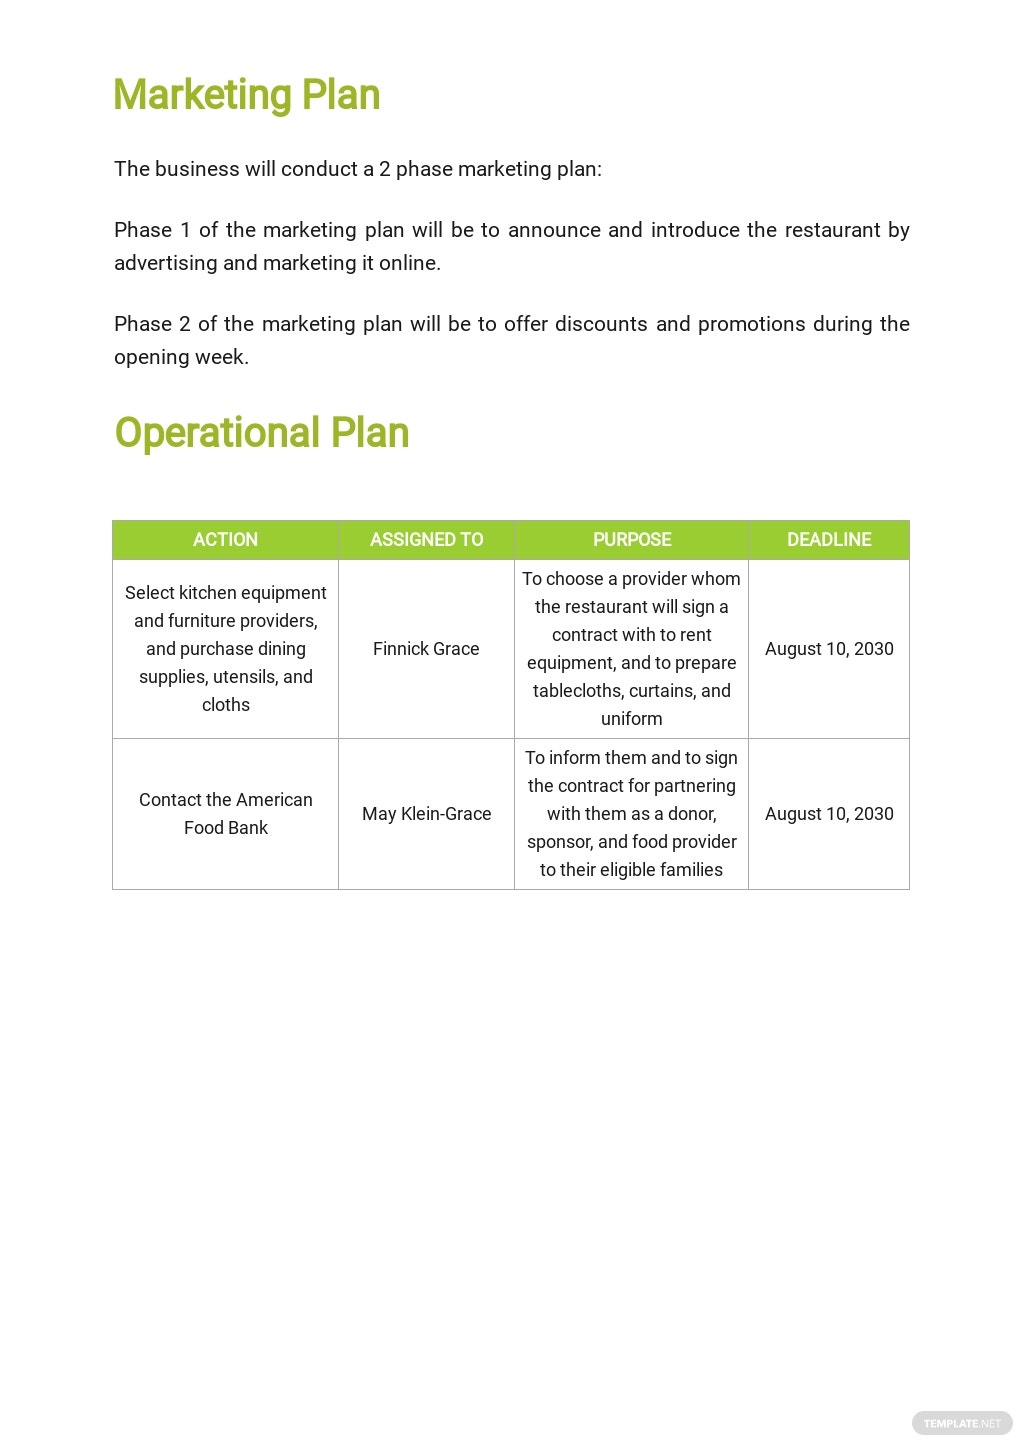 Restaurant Business Plan To Get A Loan Template [Free PDF] - Google Docs, Word, Apple Pages